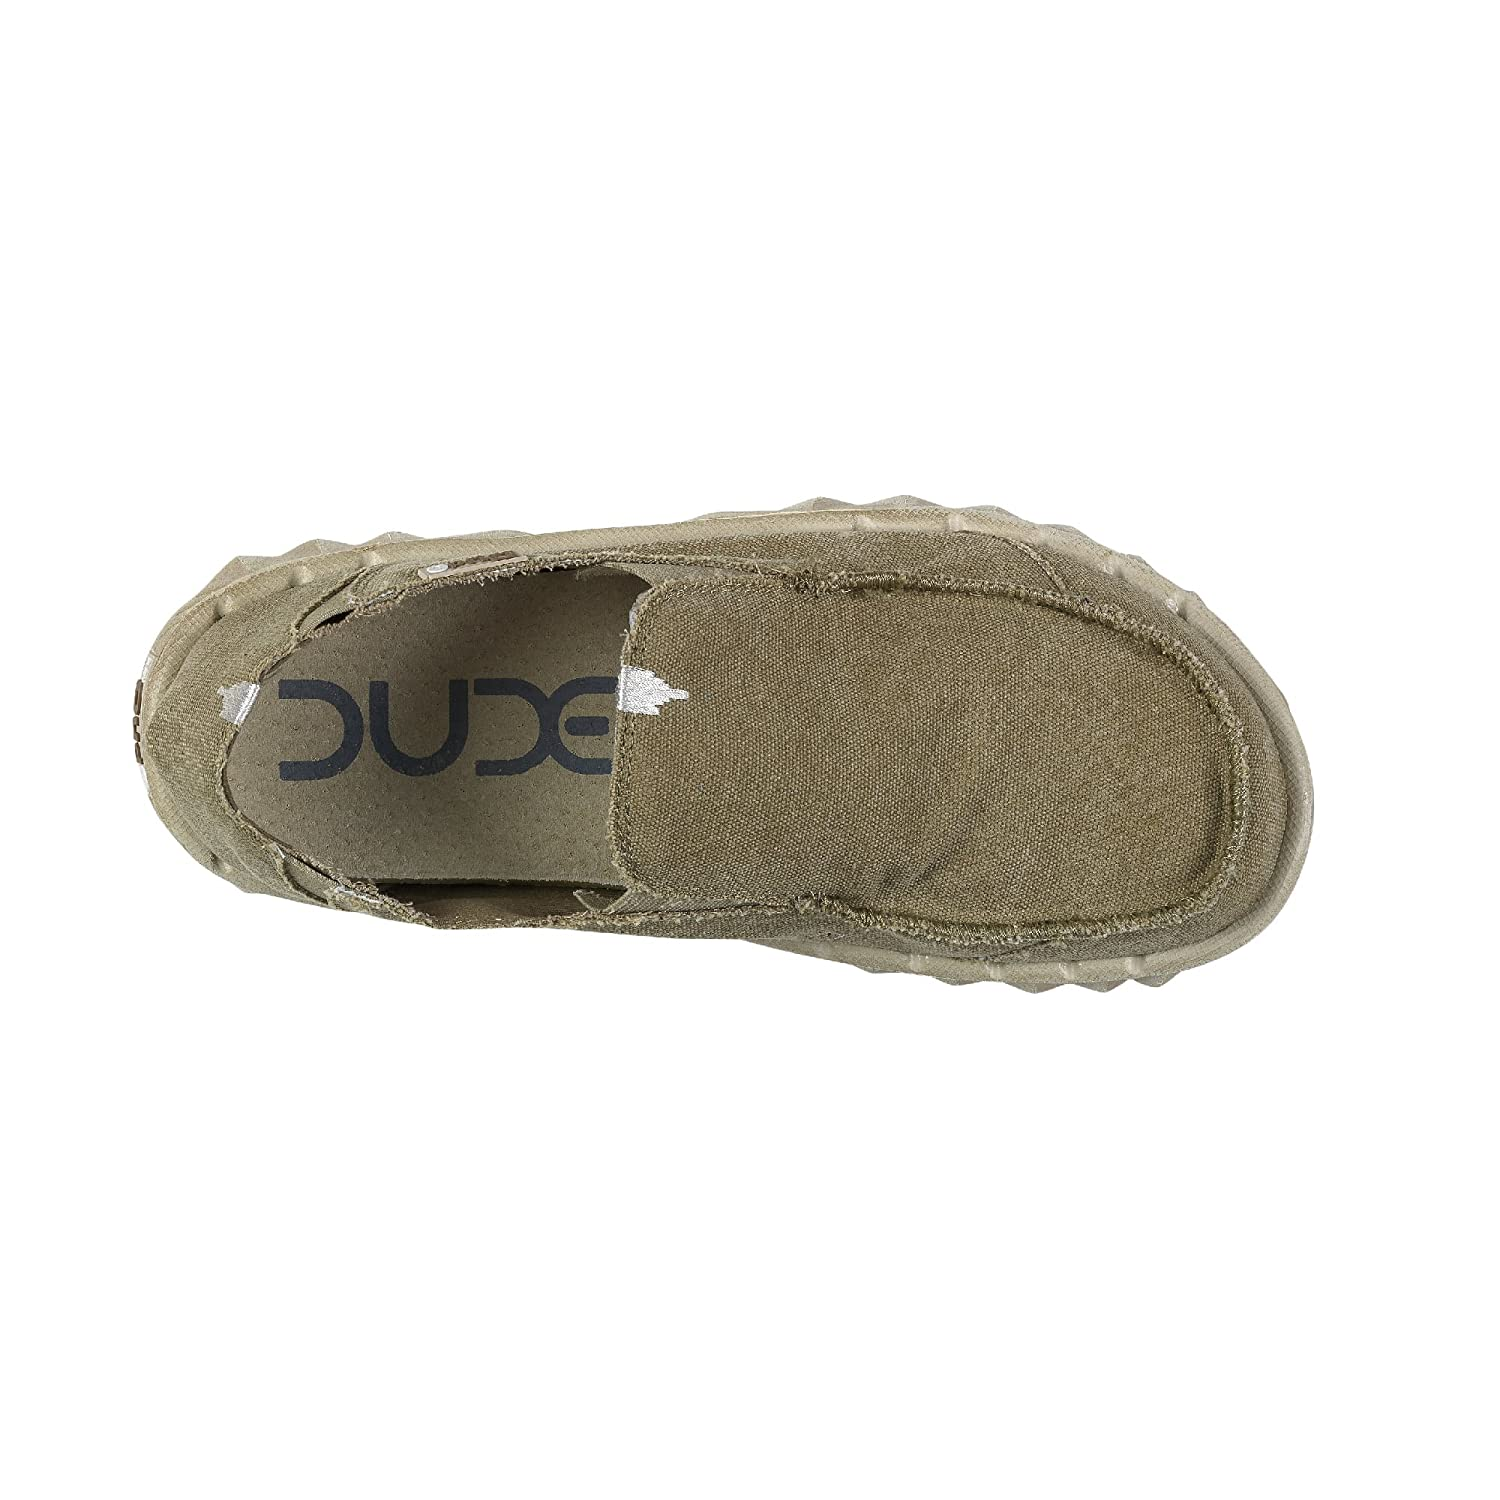 Hey Dude  Canvas  Herren Farty Canvas  Schuhes Kastanie 74cd2b